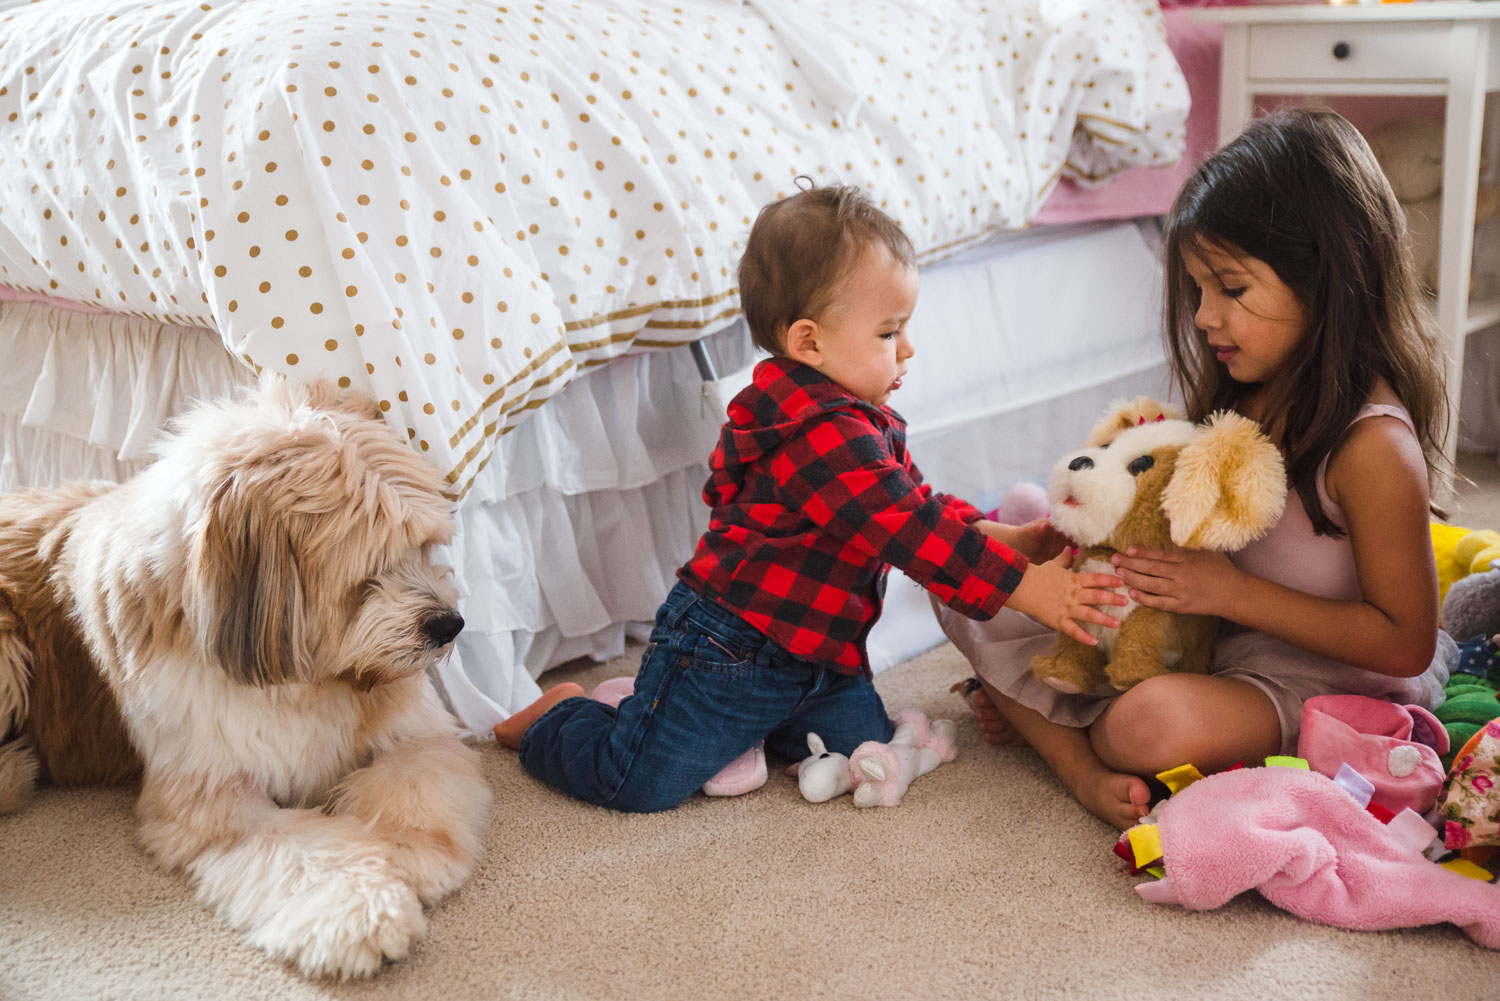 Kids and dog playing in living room.